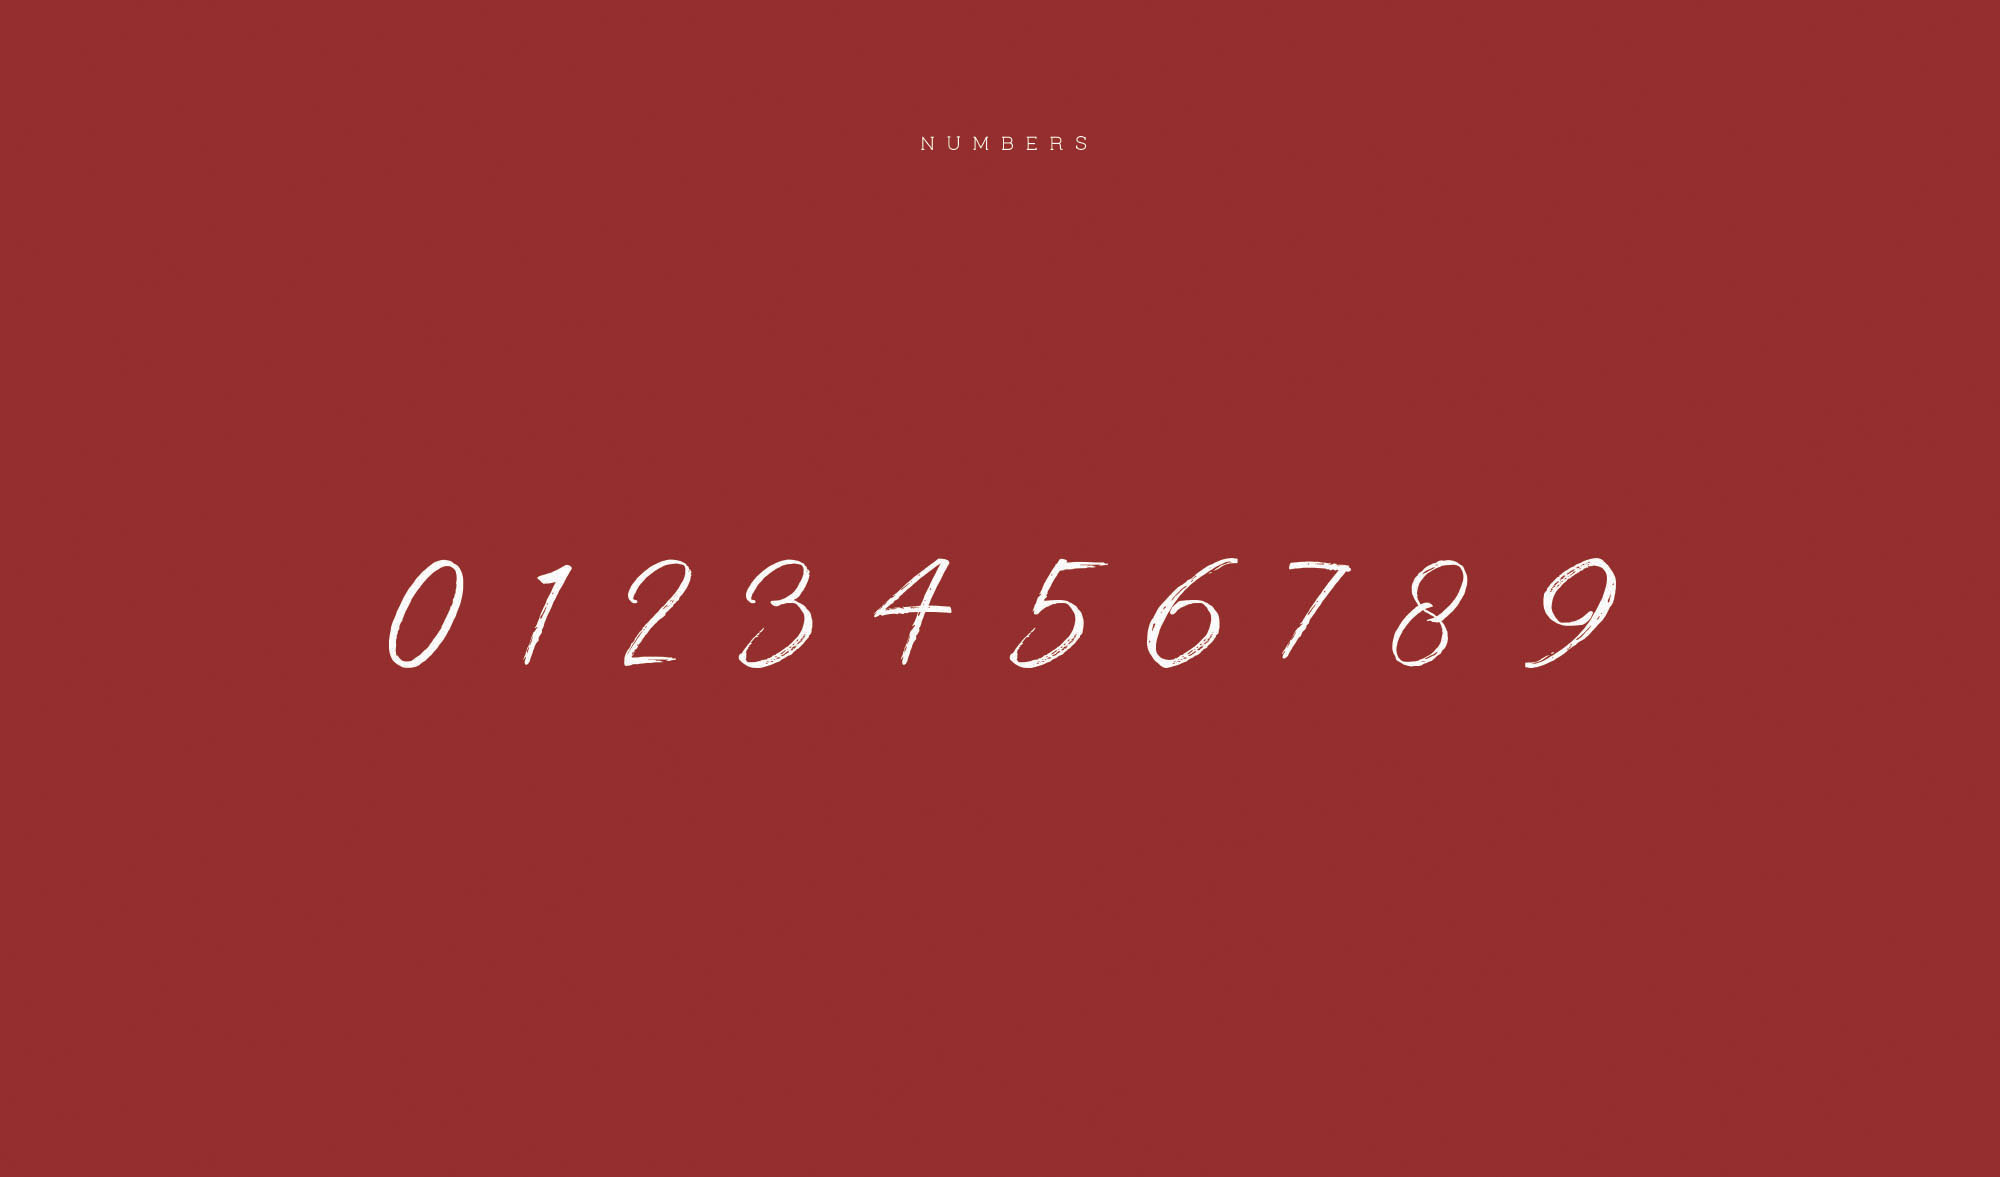 Strain Typeface - Numbers